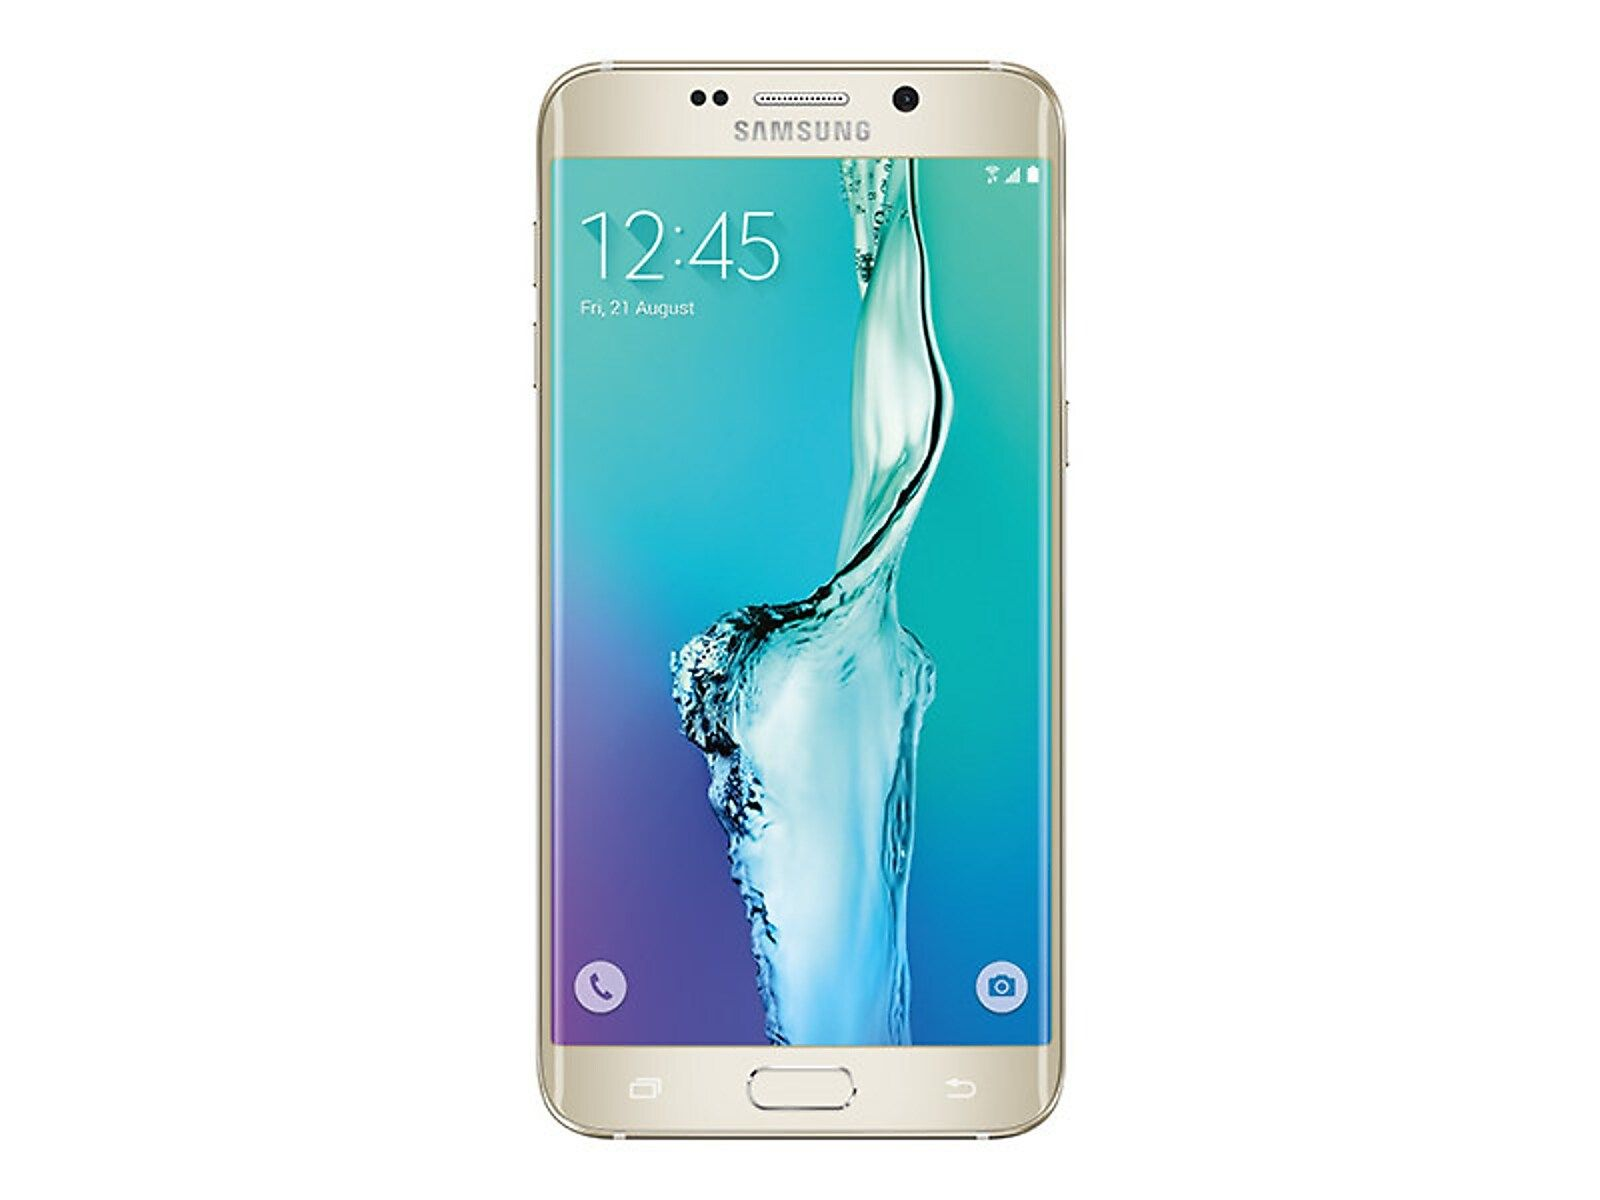 Samsung Galaxy S6 Edge 32gb At T Certified Pre Owned Smartphone Gold Platinum With Installment Galaxy Samsung Samsung Galaxy S6